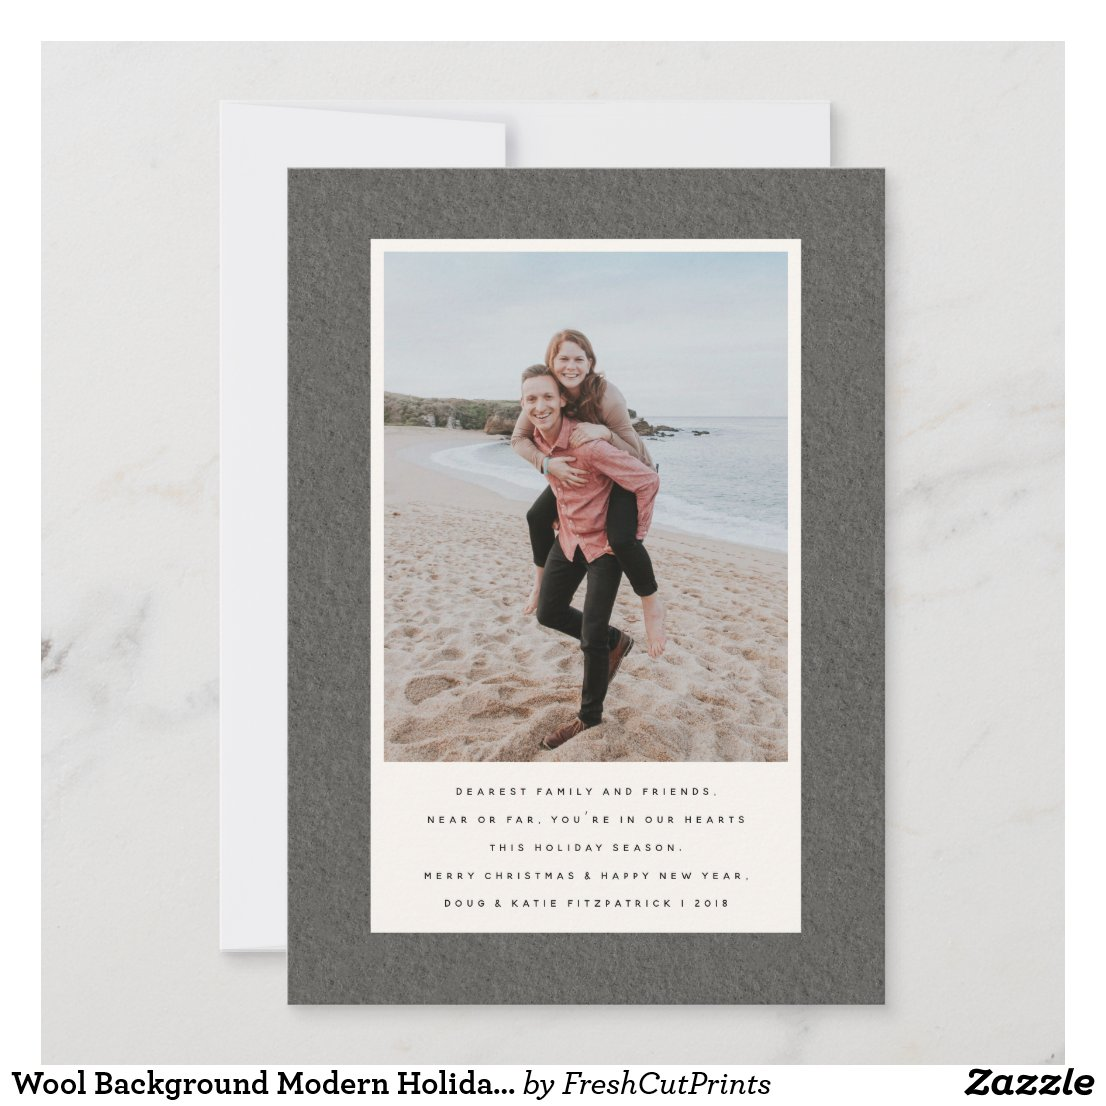 Wool Background Modern Holiday Card with Photo